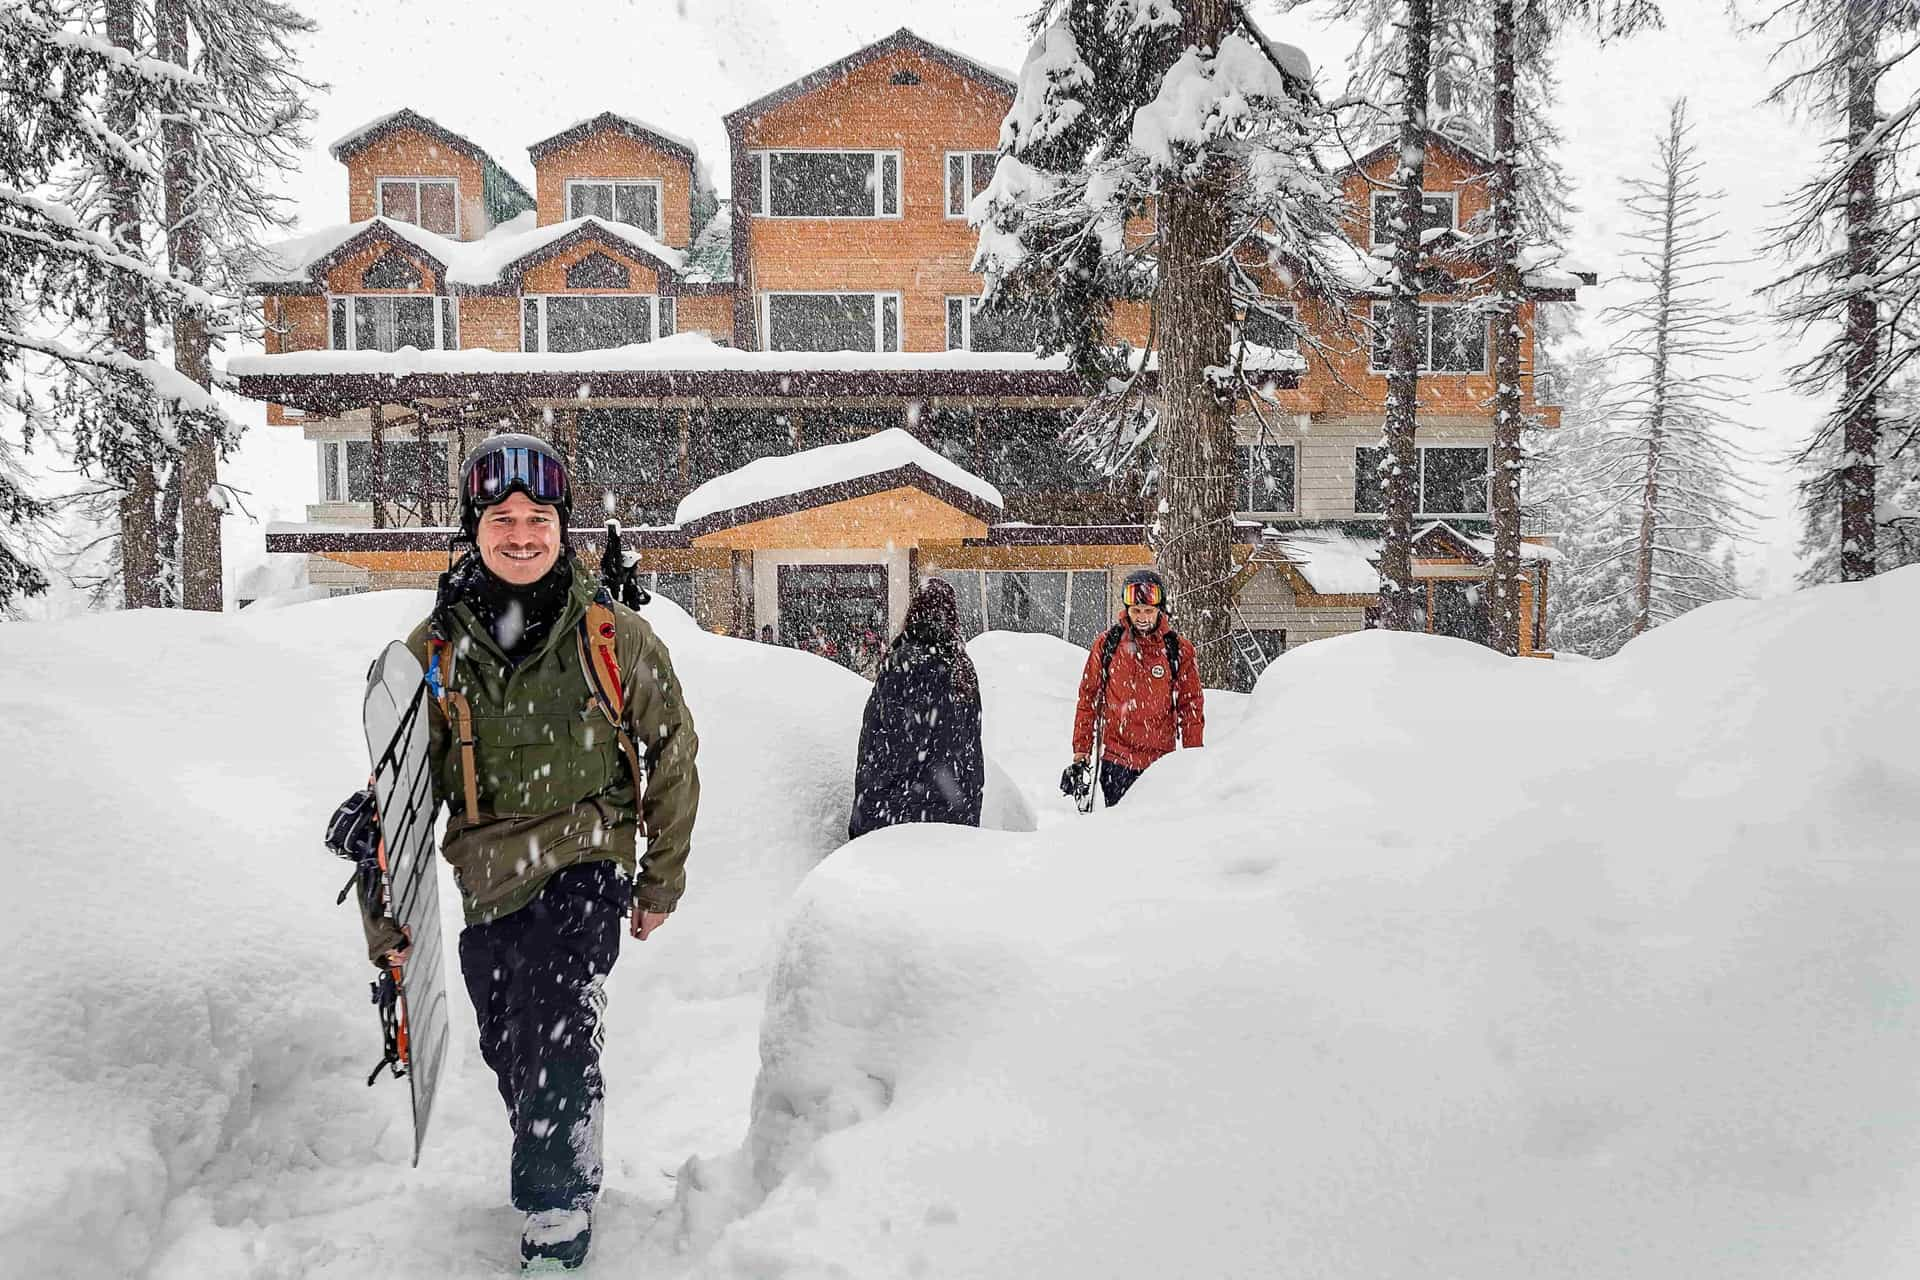 Walking out of the hotel in Gulmarg through deep snow with First Tours